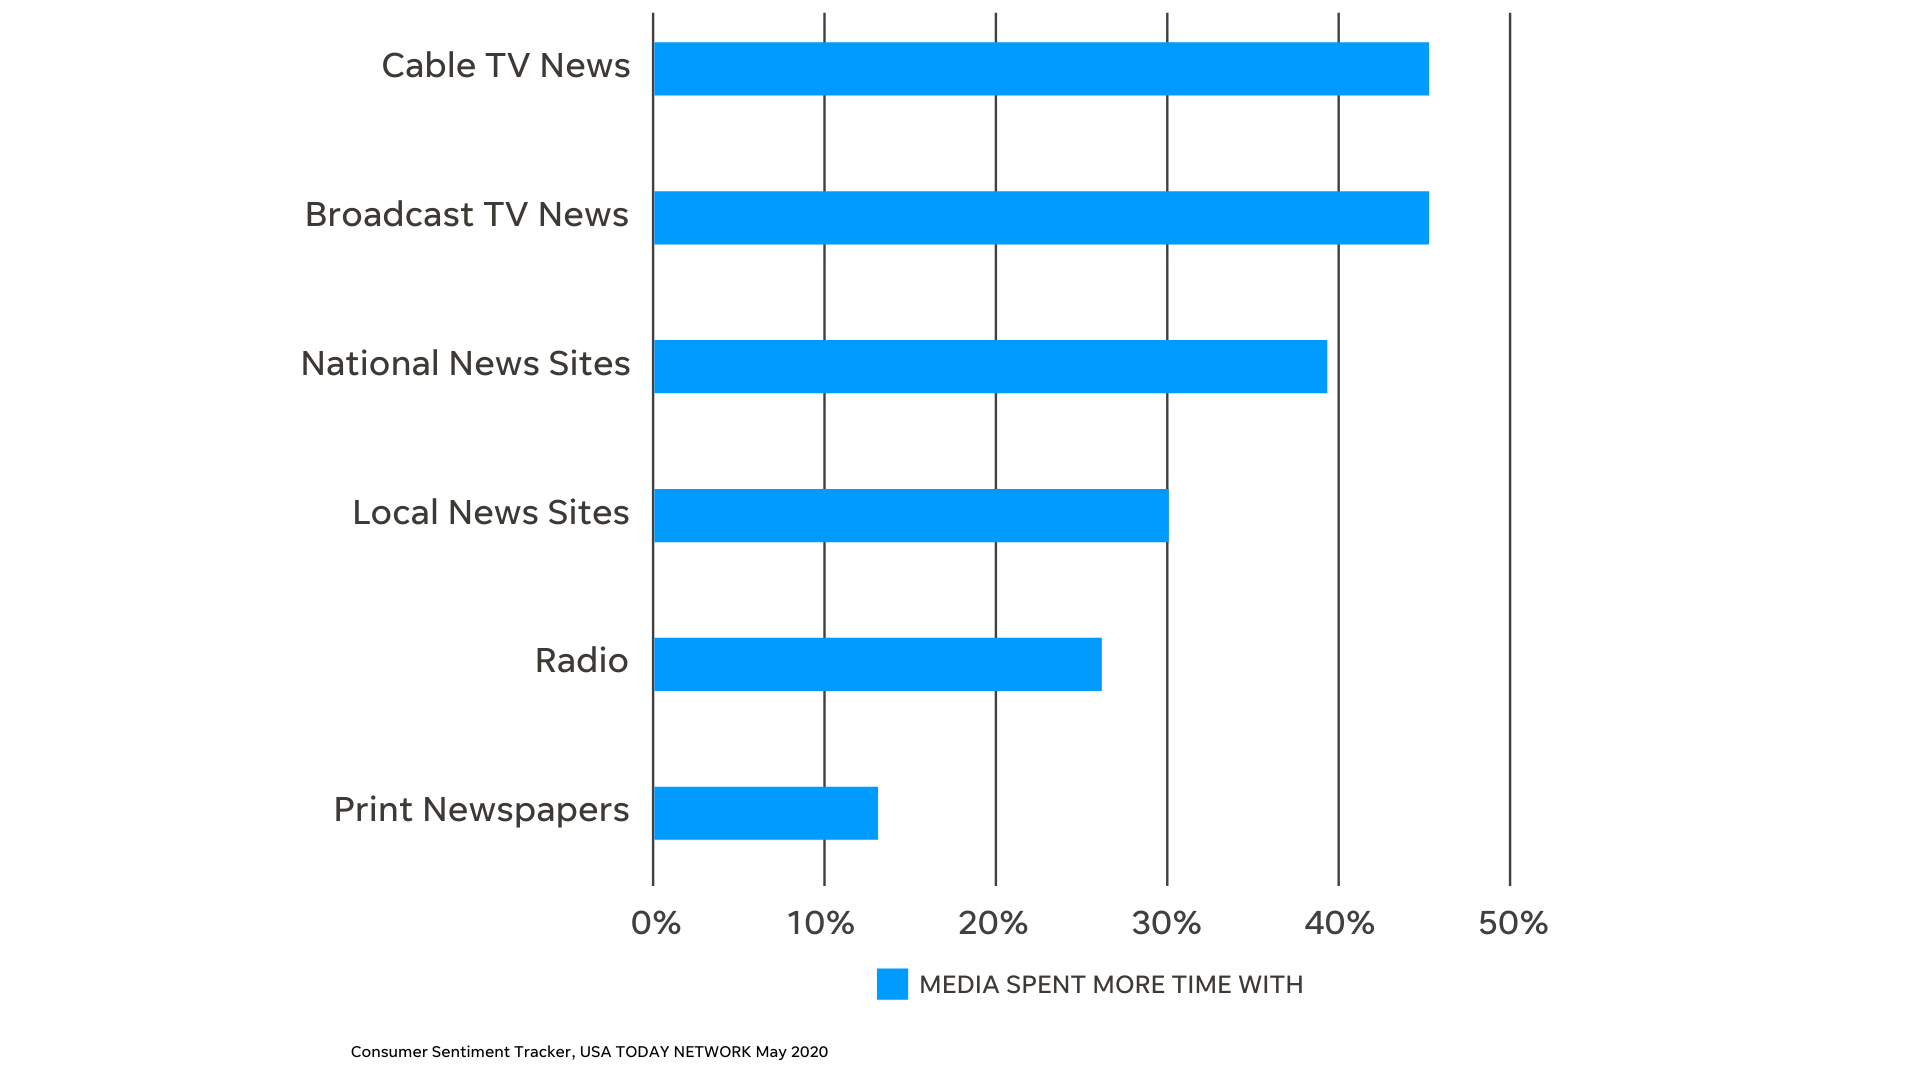 chart shows media consumption increase across news channels during covid-19